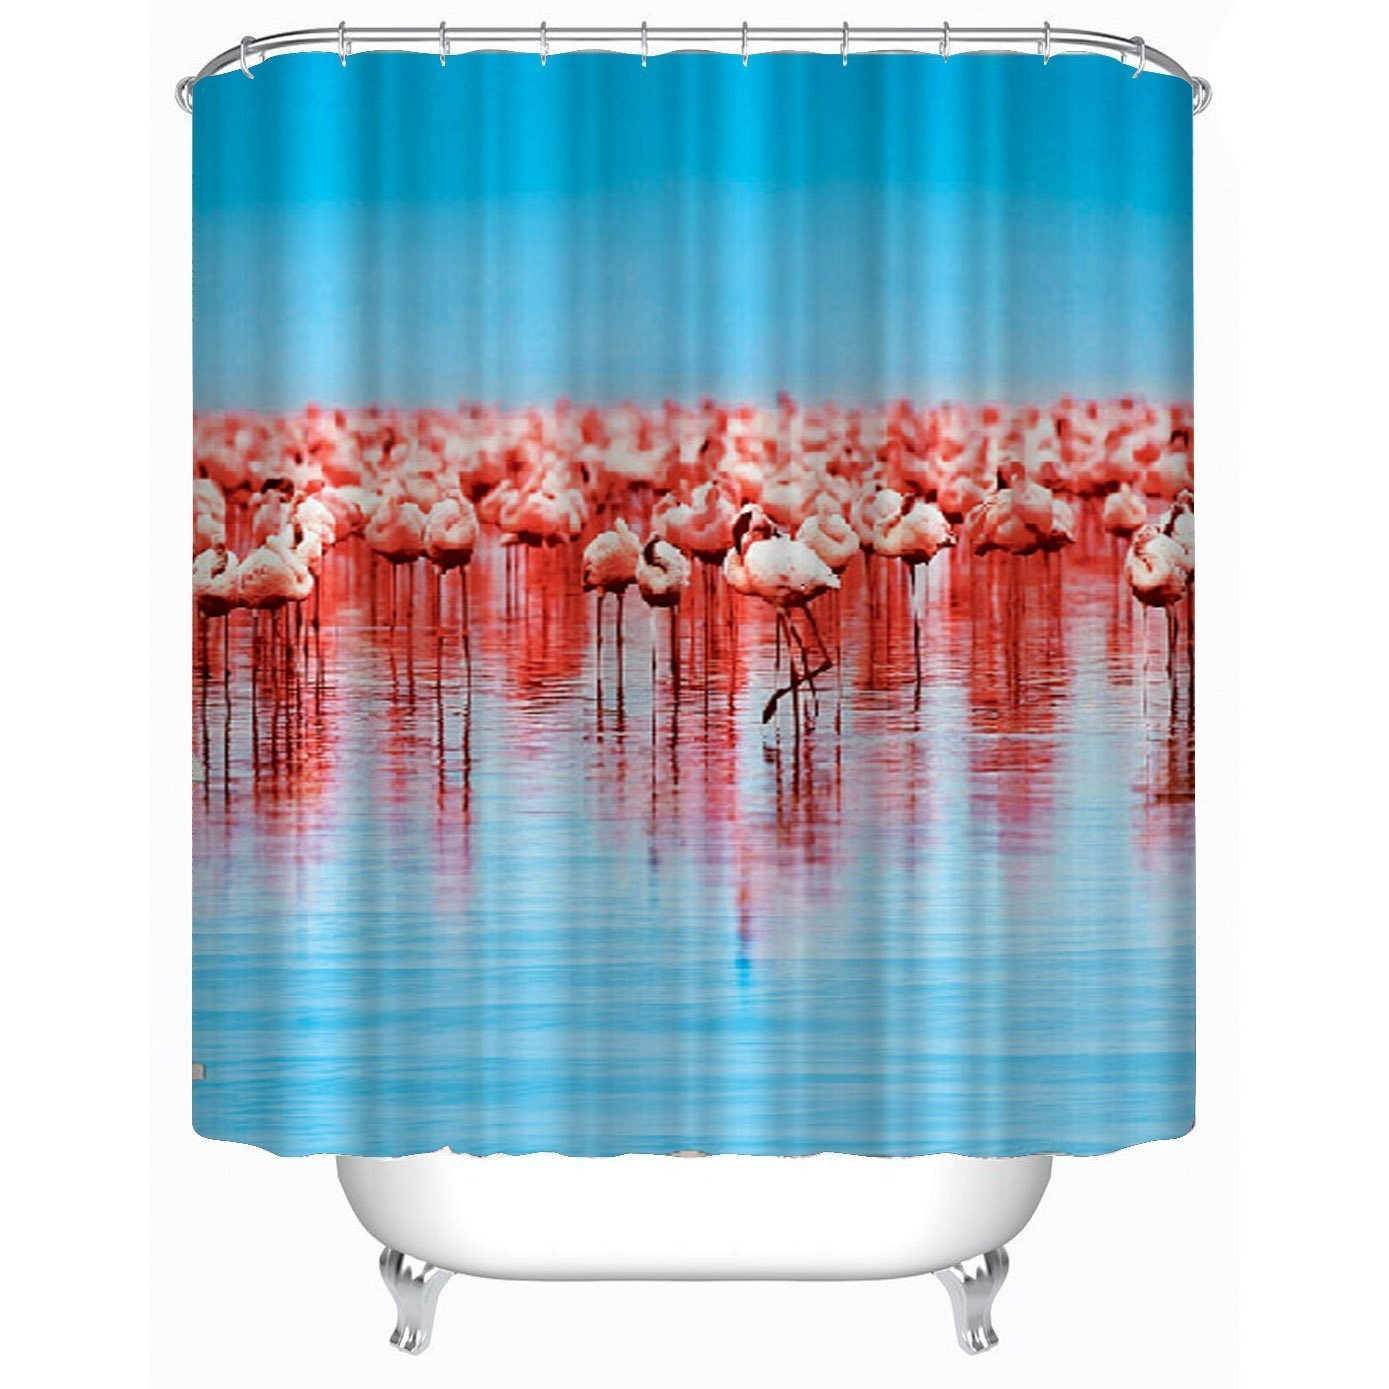 Flamingos Shower Curtain Waterproof Mouldproof Anti Bacteria 72x78 Inch In Curtains From Home Garden On